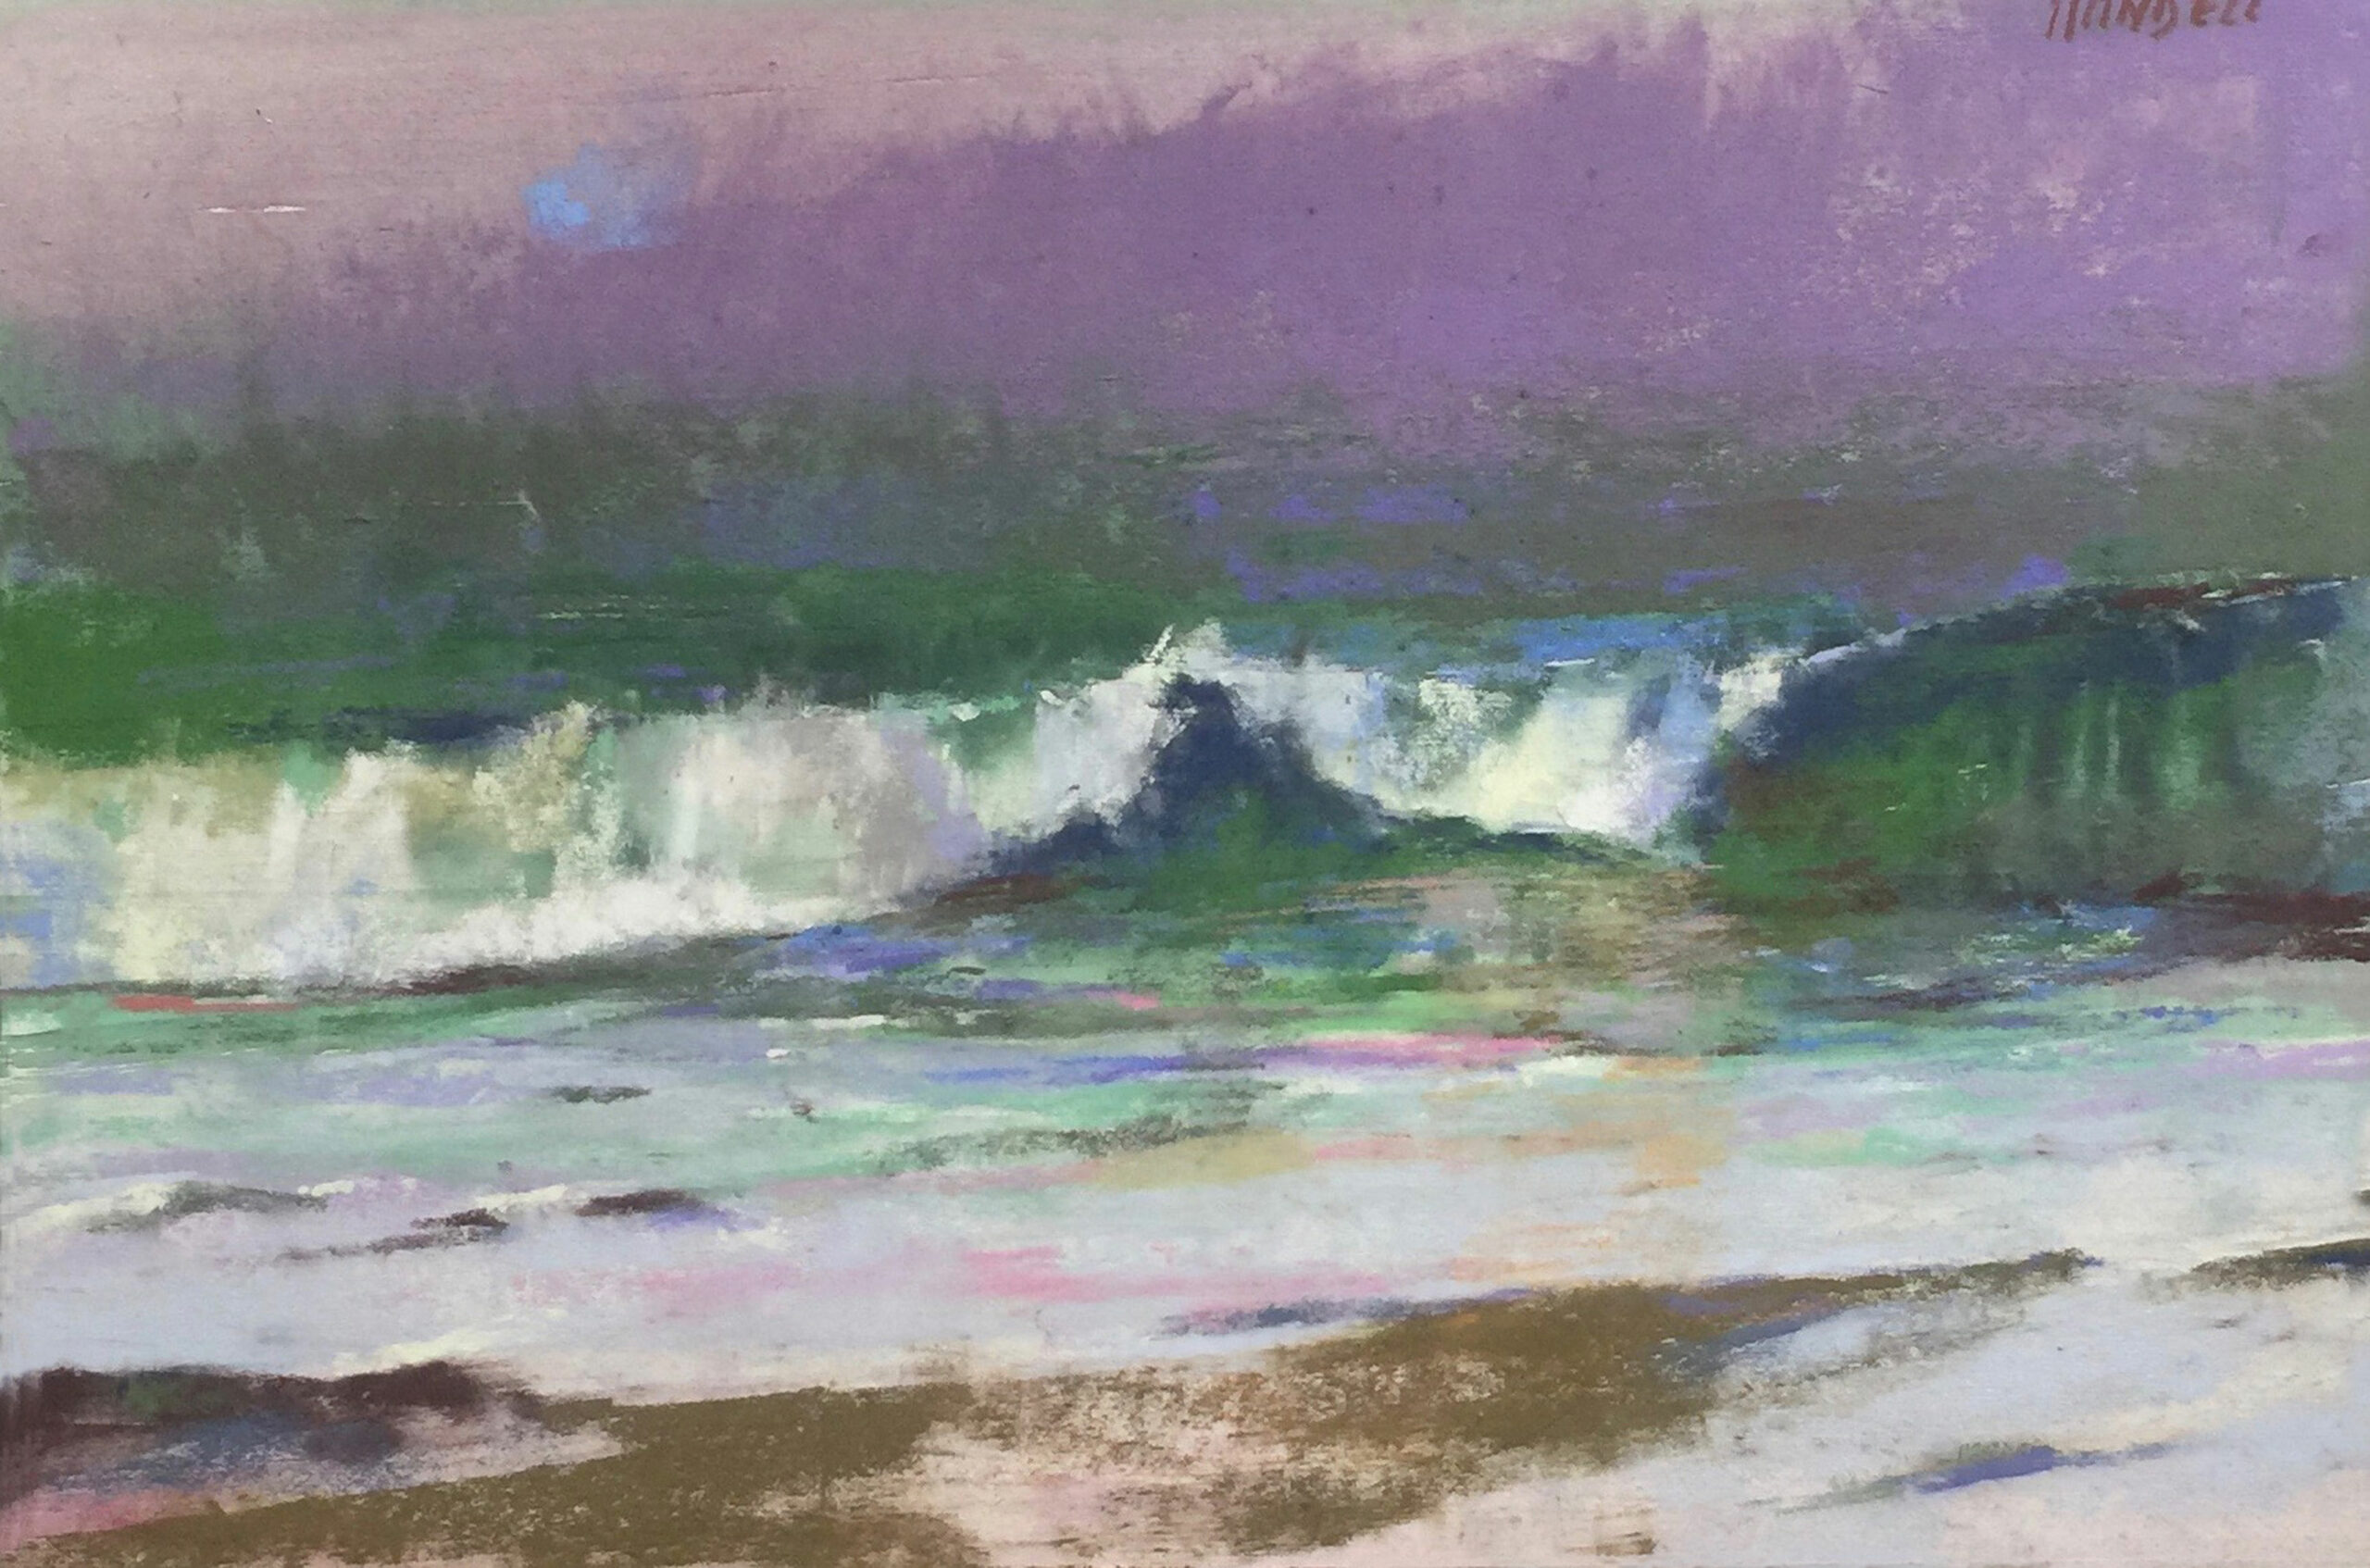 Handell,-Albert,-2016-Fra-Angelico-Artist-of-the-Year,-High-Tide,-pastel-12×18,-$3,800-_$6,500-retail-regularly300dpi